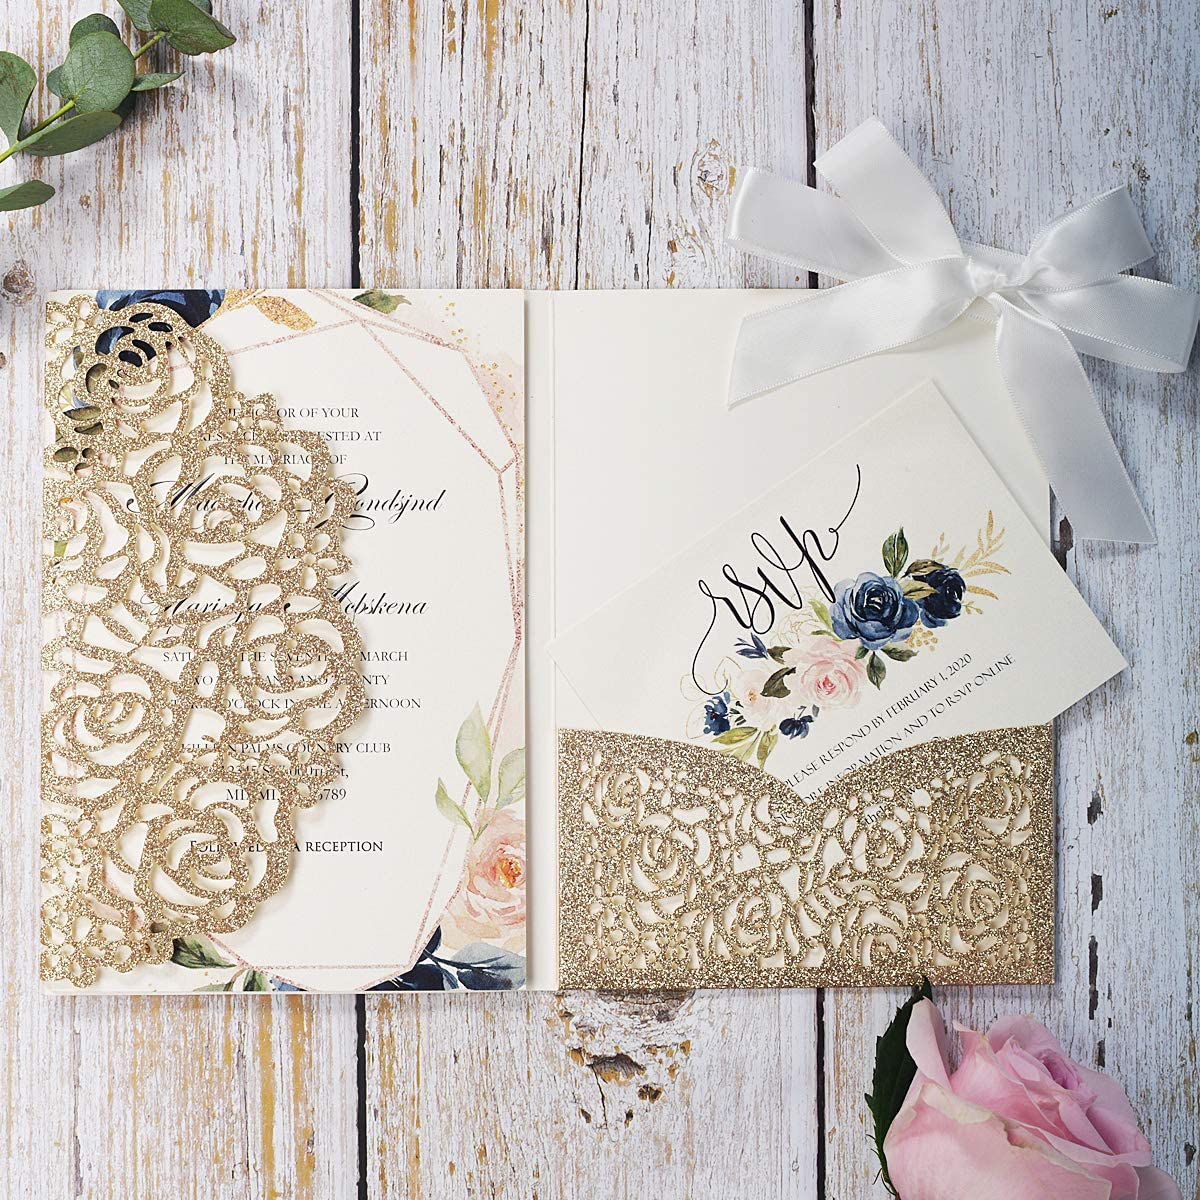 KUCHYNEE 5.1 x7.1 inch 20PCS Blank Gold Glitter Laser Cut wedding invitations with Envelopes and RSVP Hollow Rose Pocket With Ribbon Invitation Cards for Wedding Invite